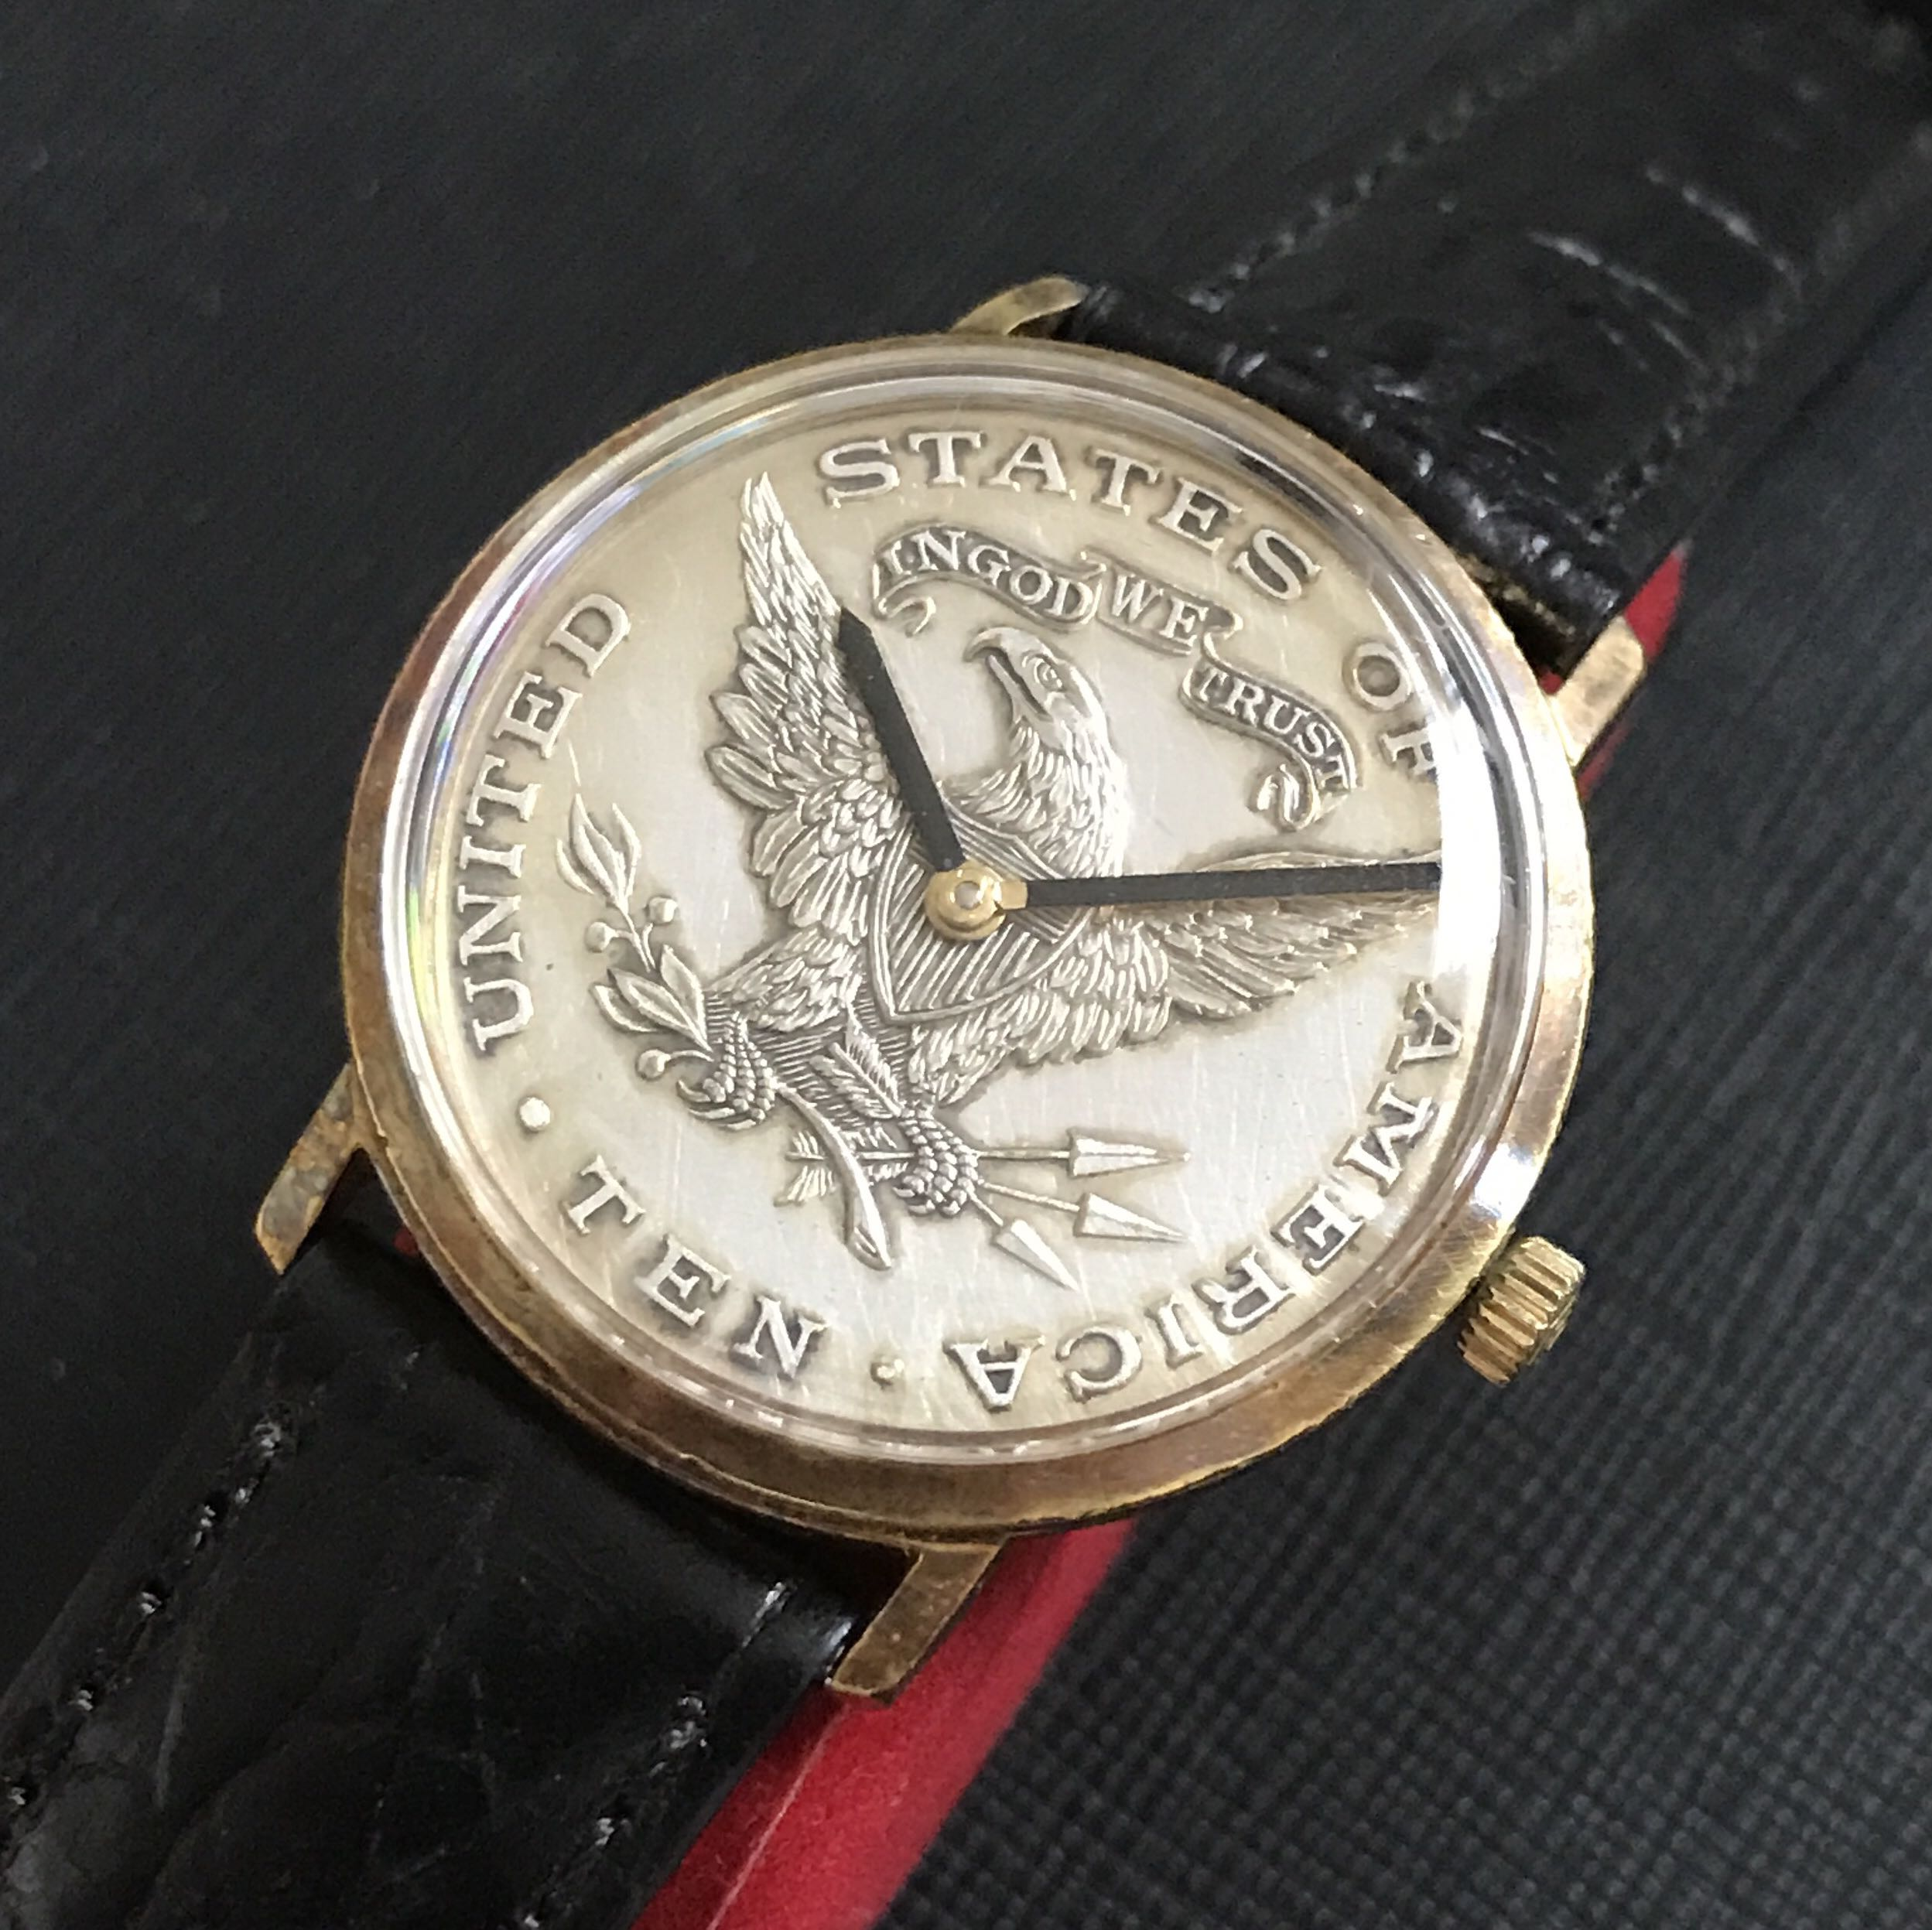 co eagle pre omega axial double watches owned constellation